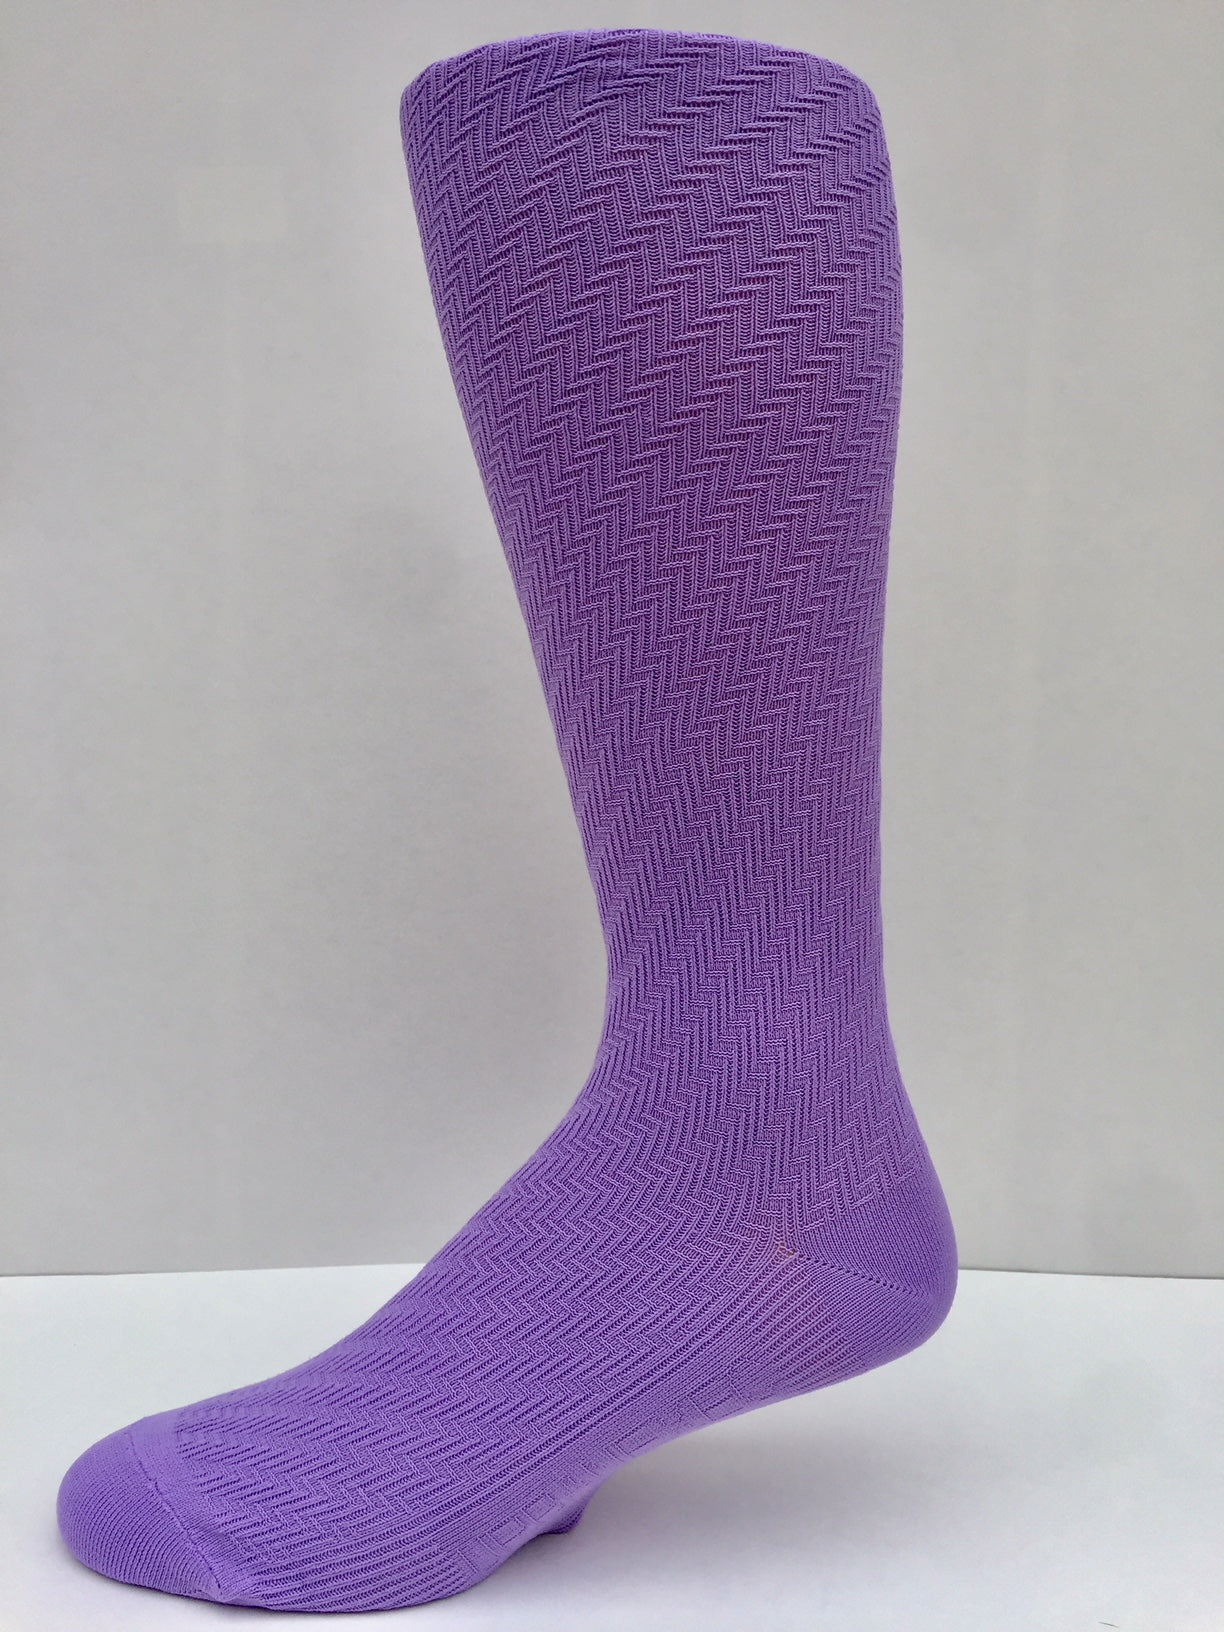 New 2018 Solid Lavender Purple Herringbone Pattern Men's Socks OTC